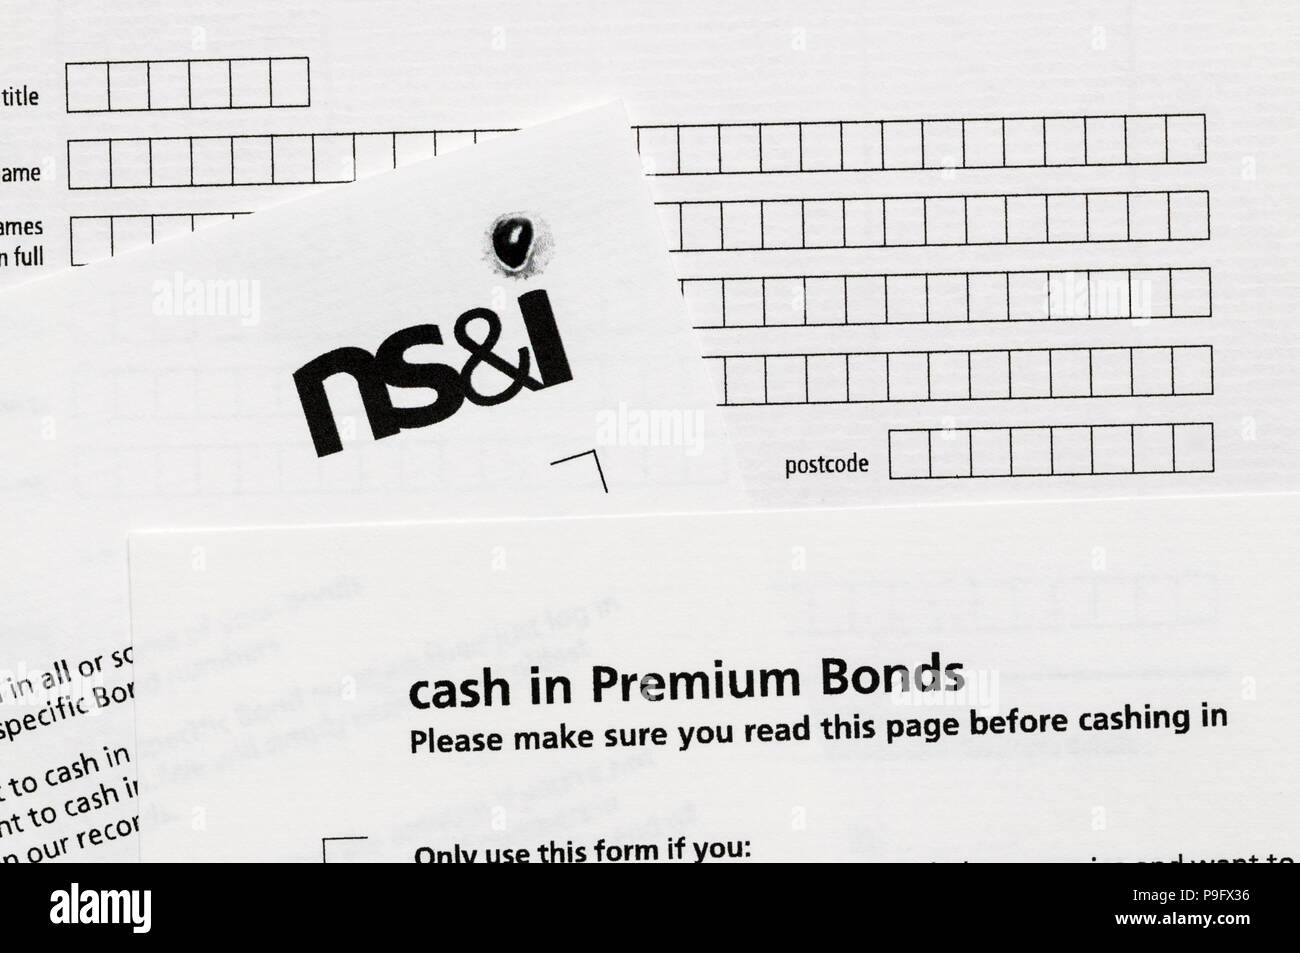 Forms to cash in premium bonds - Stock Image